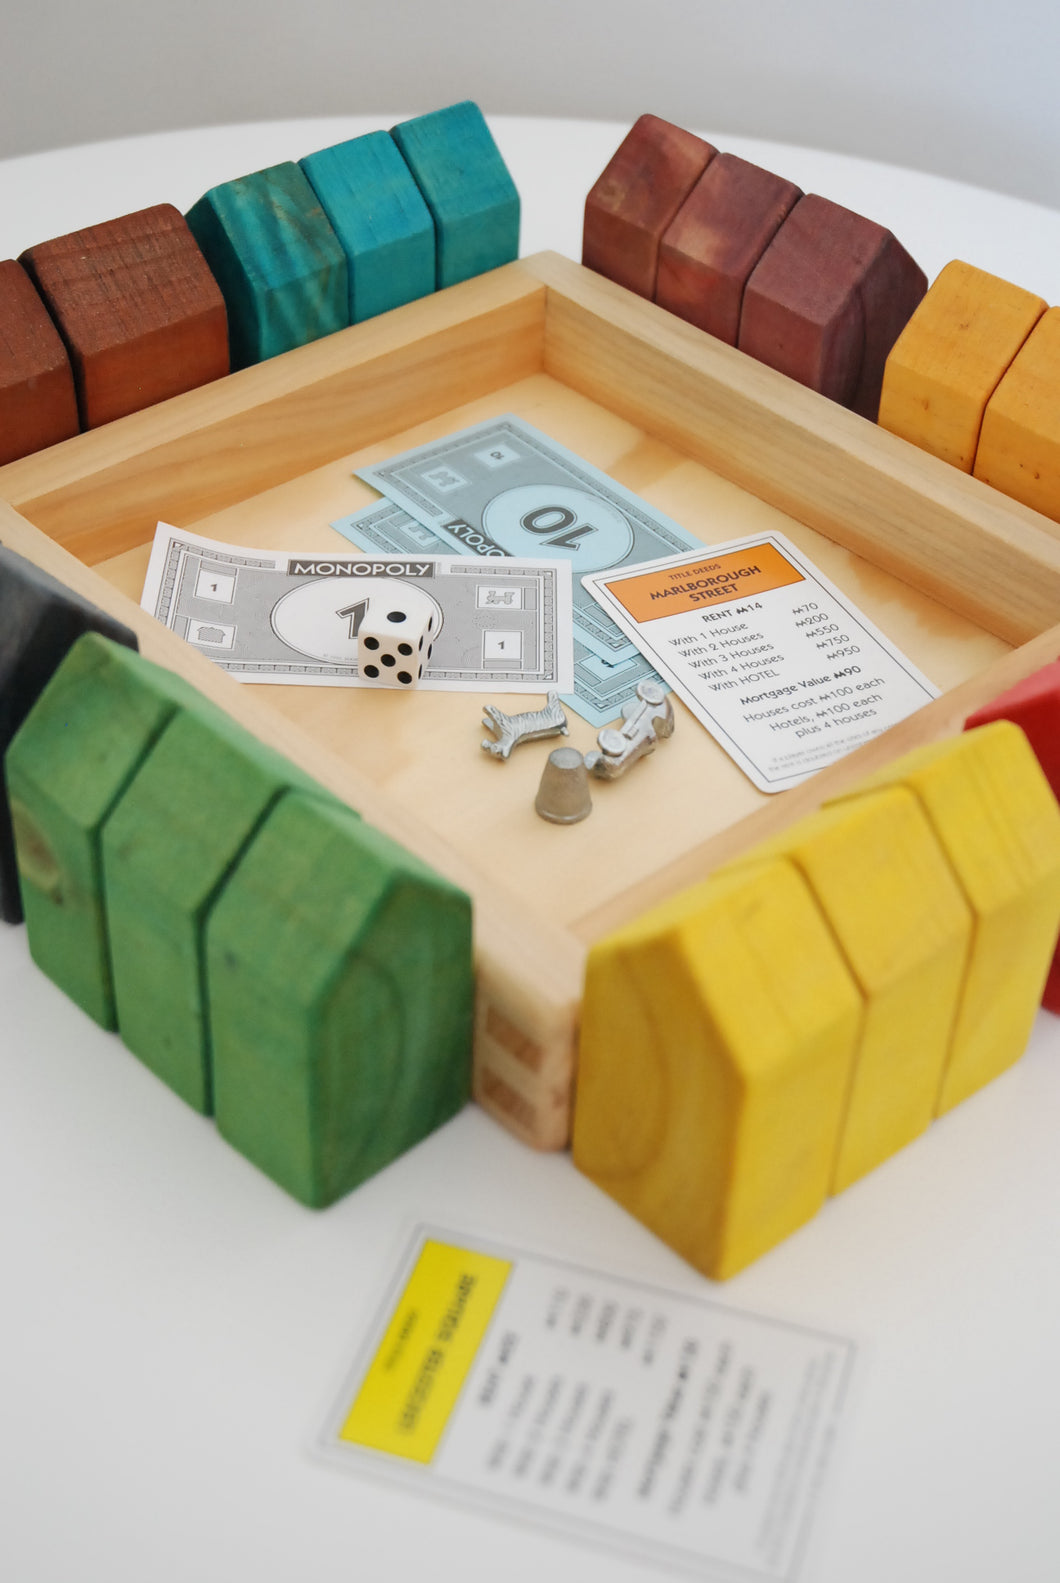 The Monopoly Inspired Houses